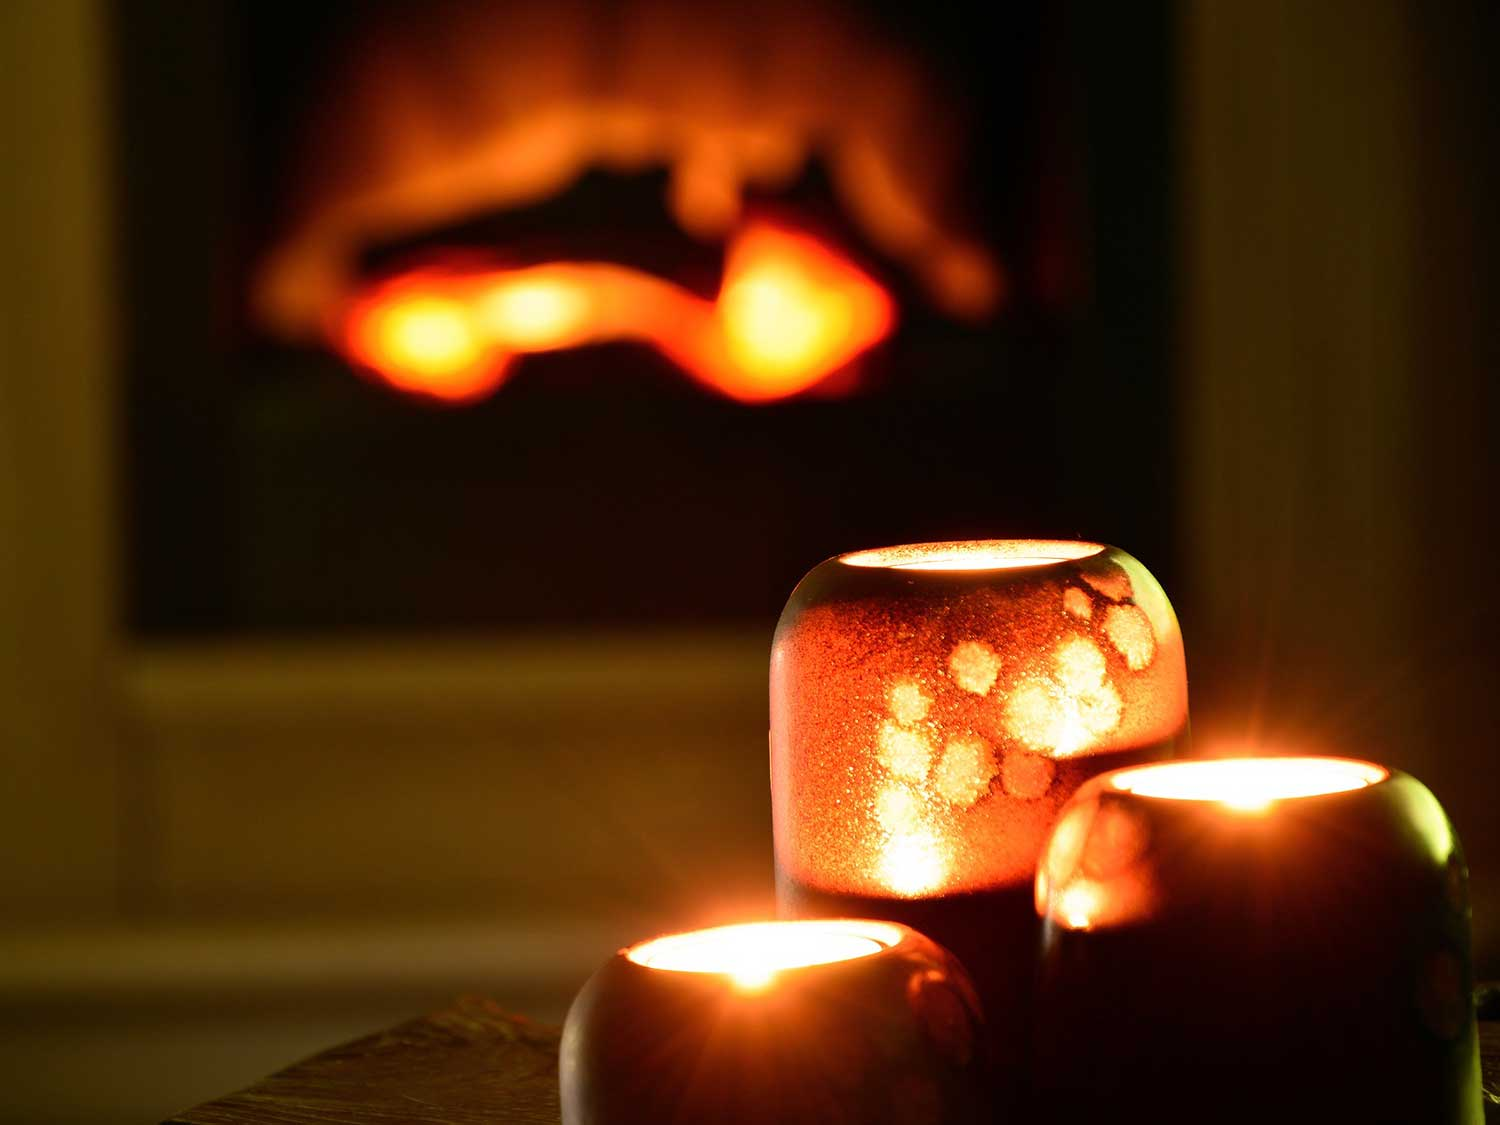 Candles in front of fire.